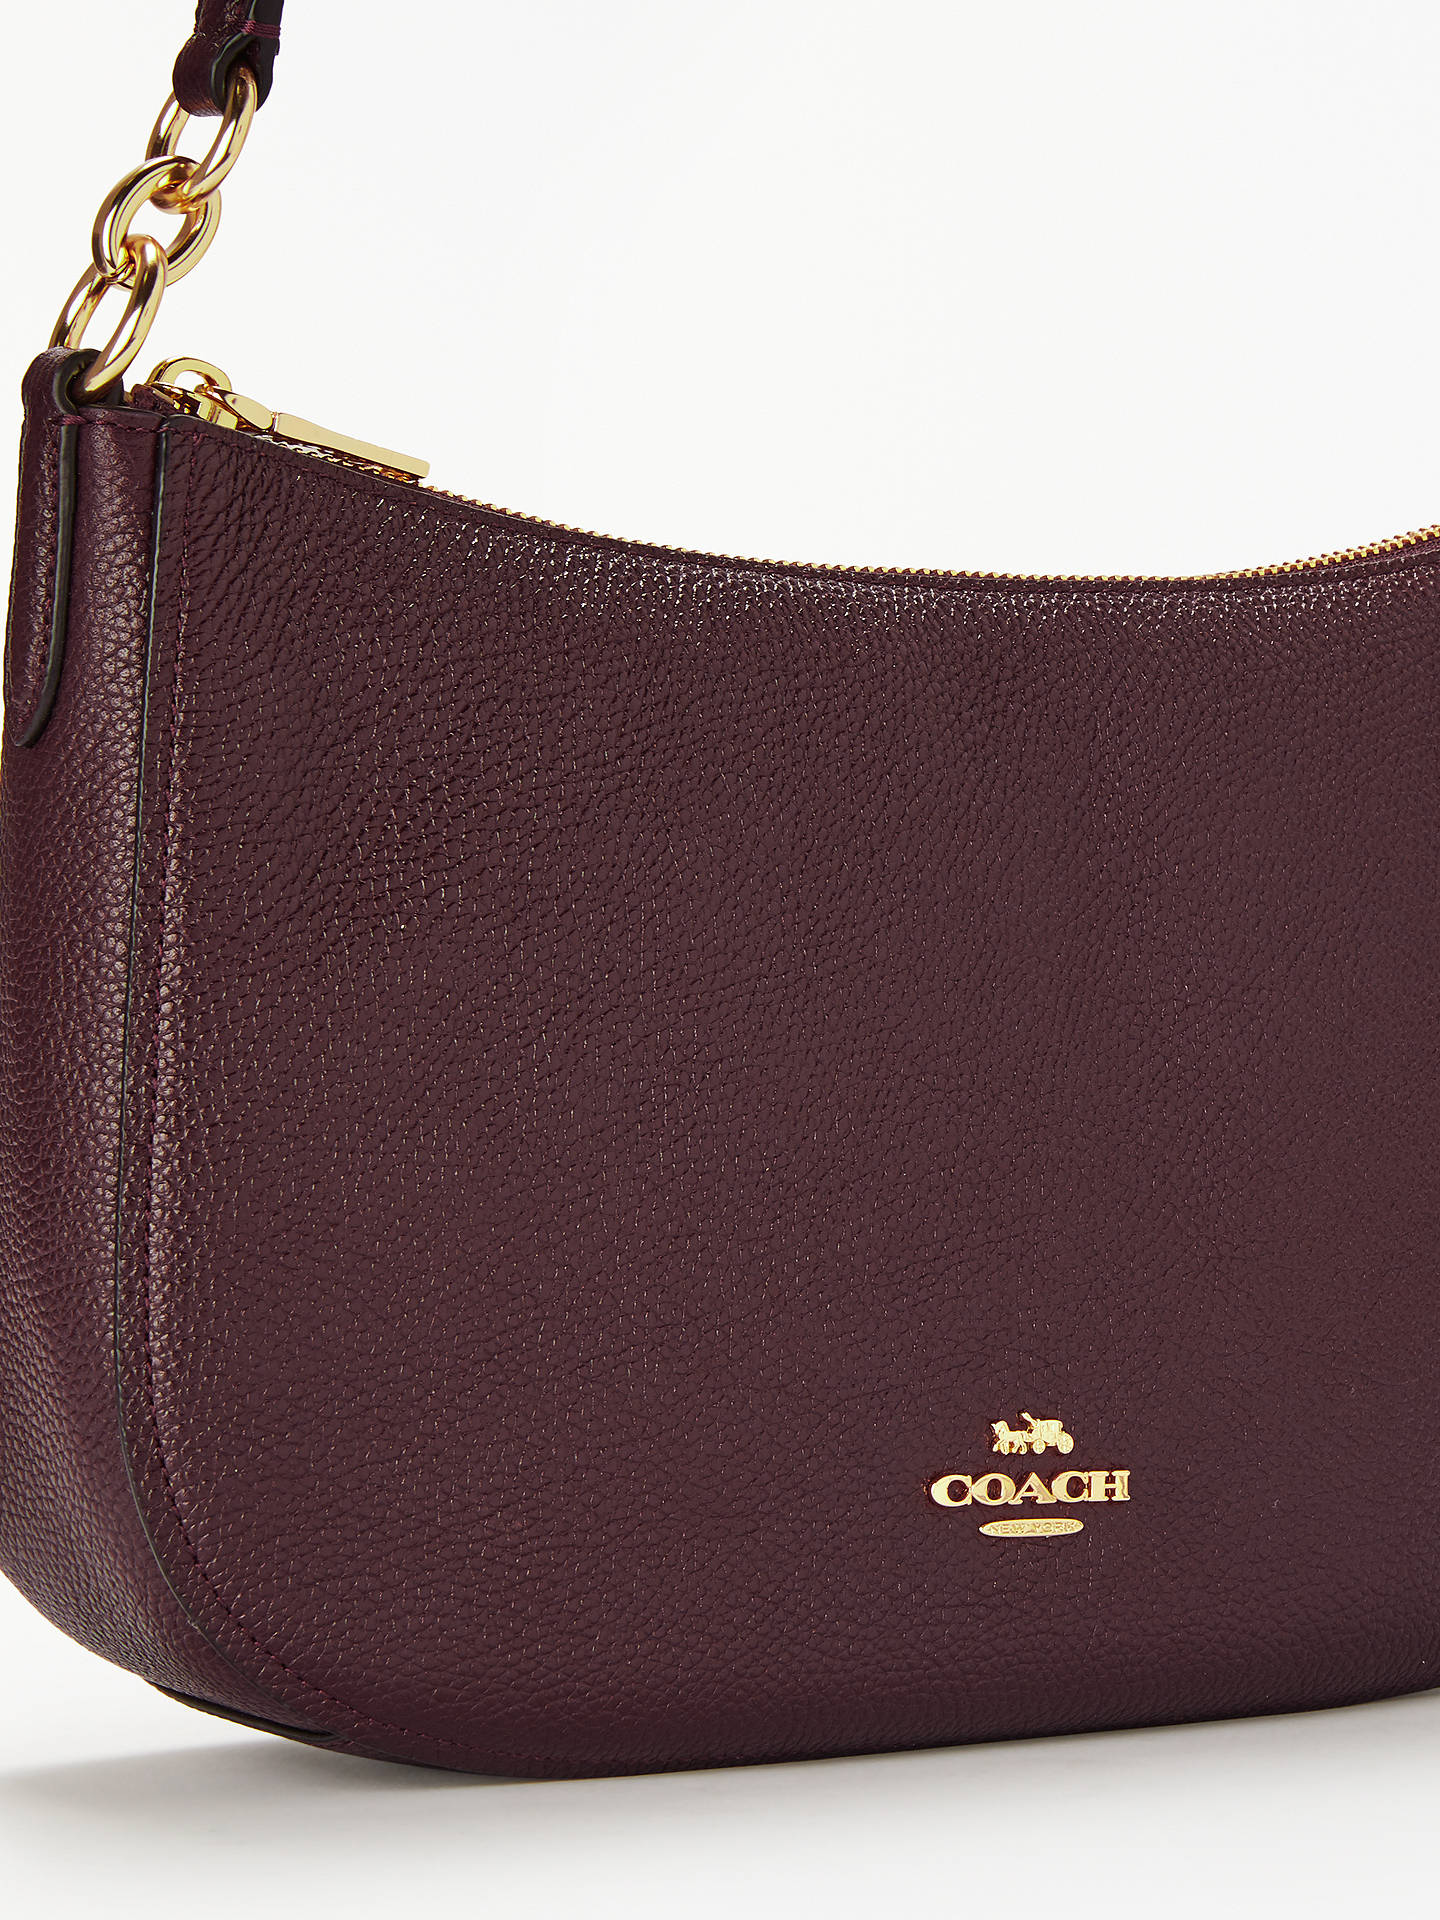 c5c65e9232a6 ... get buycoach chelsea pebble leather cross body bag oxblood online at  johnlewis cf8cf 90574